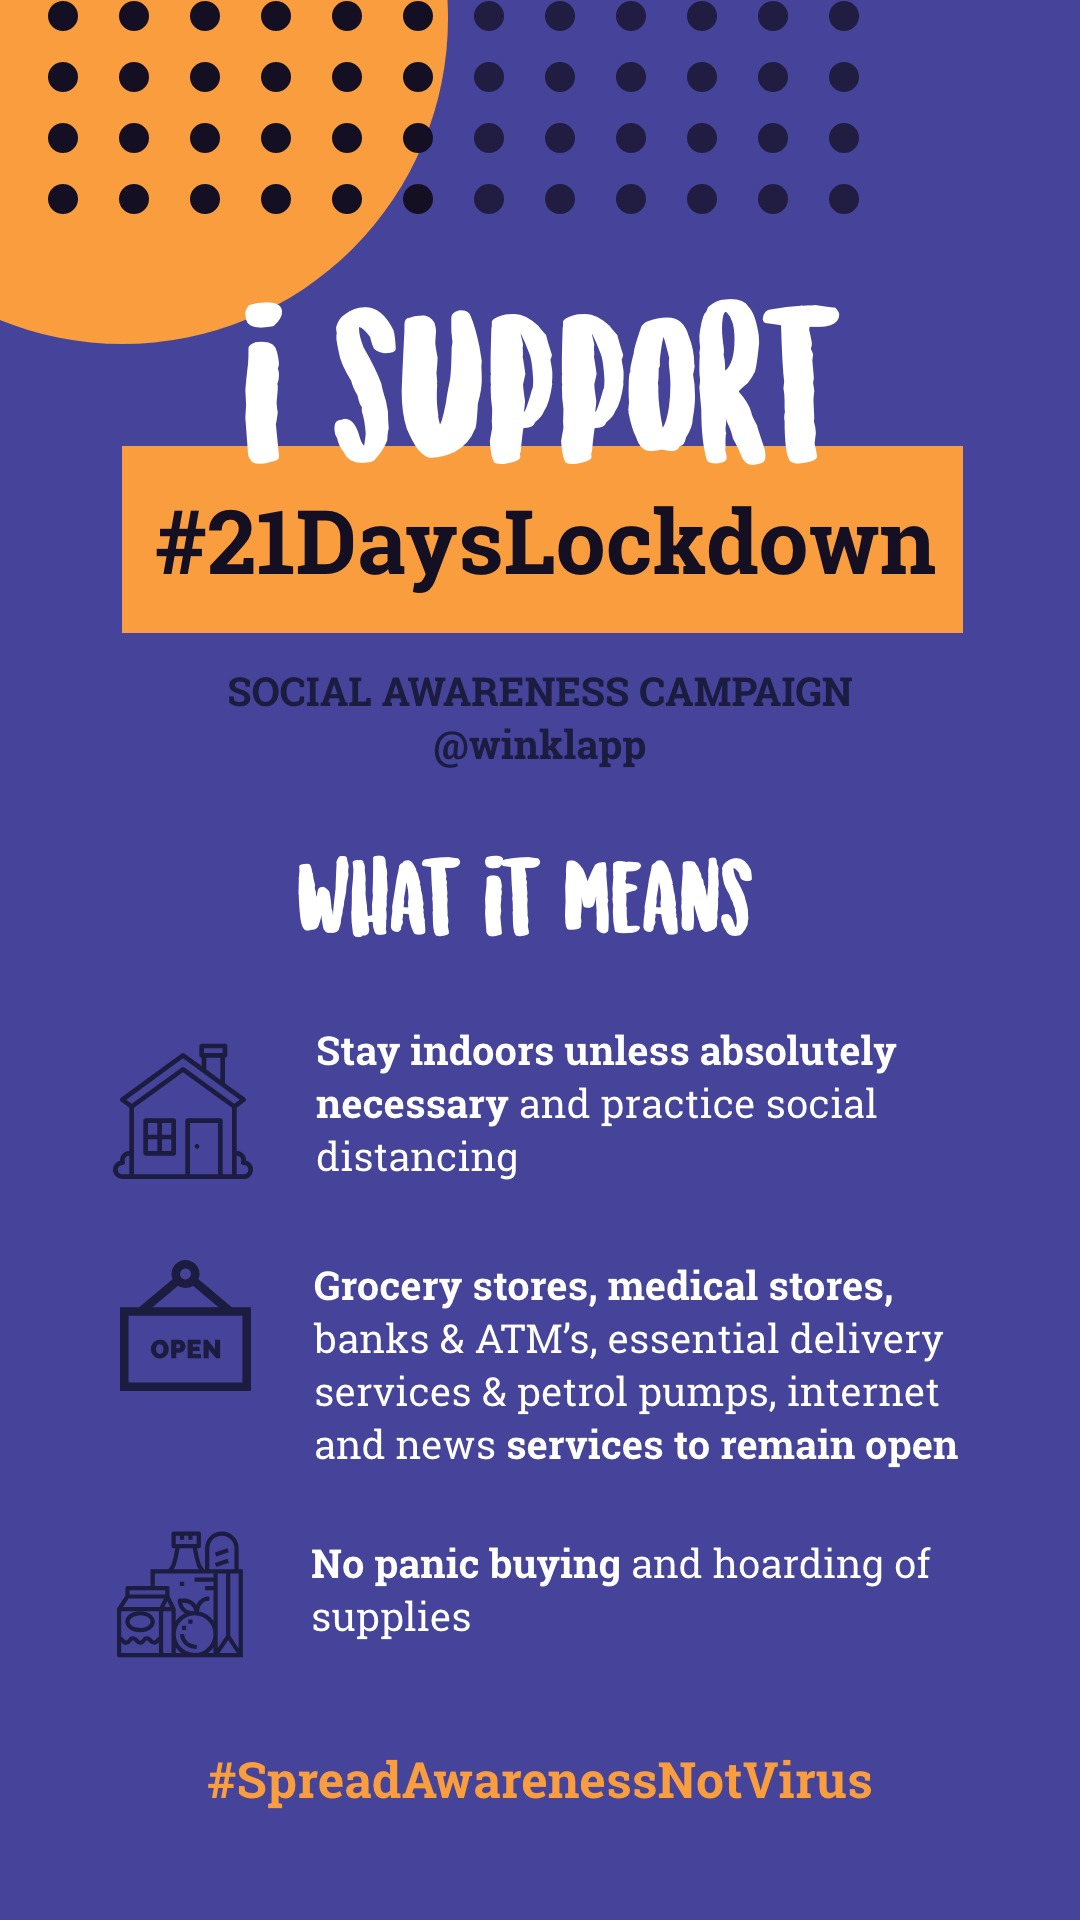 21DaysLockdown - Social Awareness Campaign image